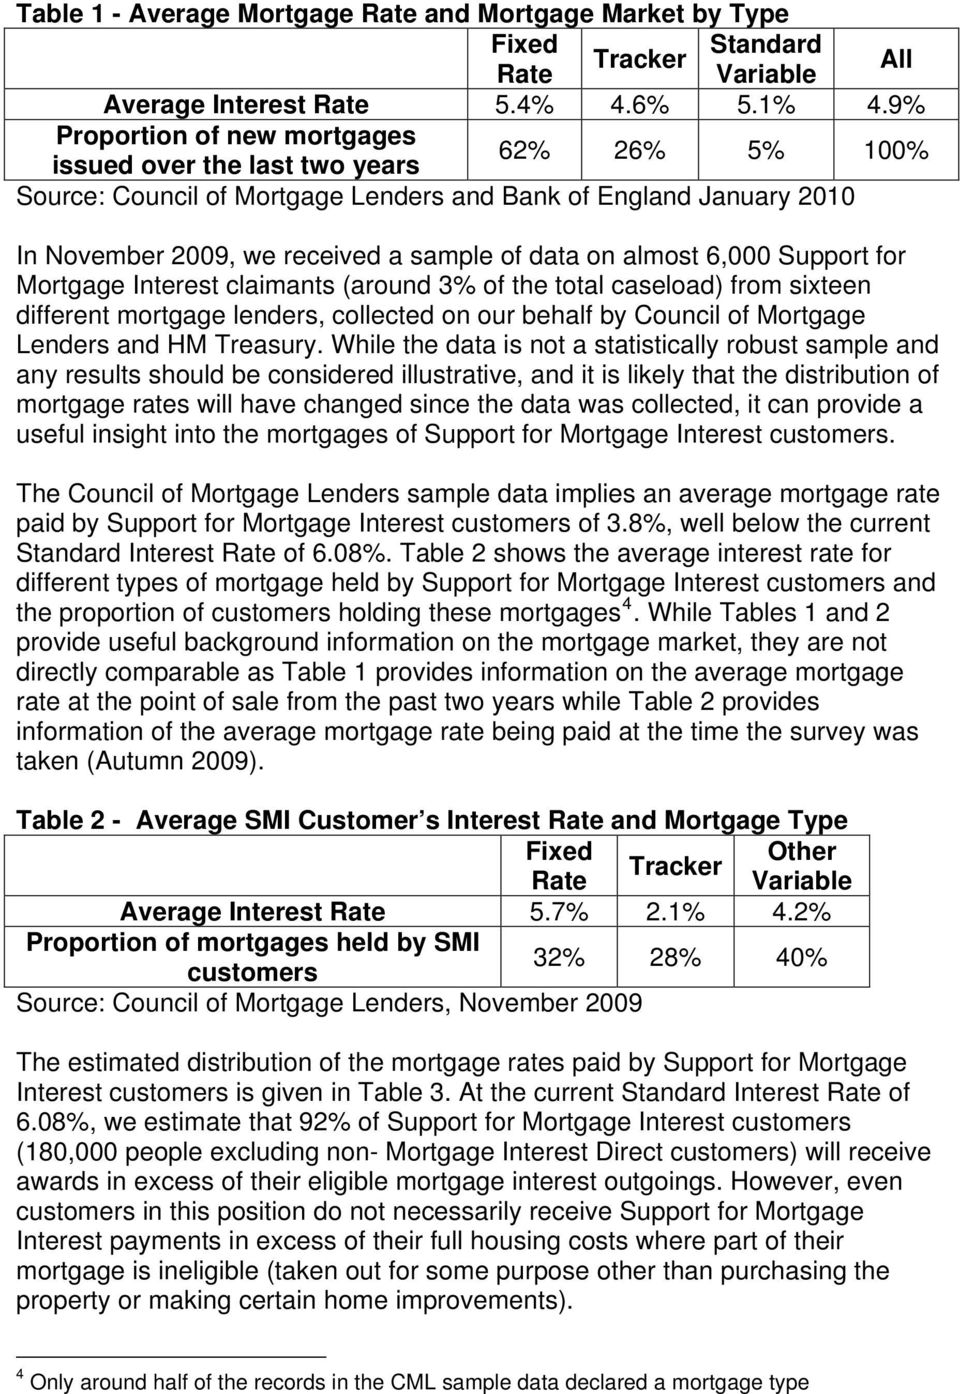 almost 6,000 Support for Mortgage Interest claimants (around 3% of the total caseload) from sixteen different mortgage lenders, collected on our behalf by Council of Mortgage Lenders and HM Treasury.